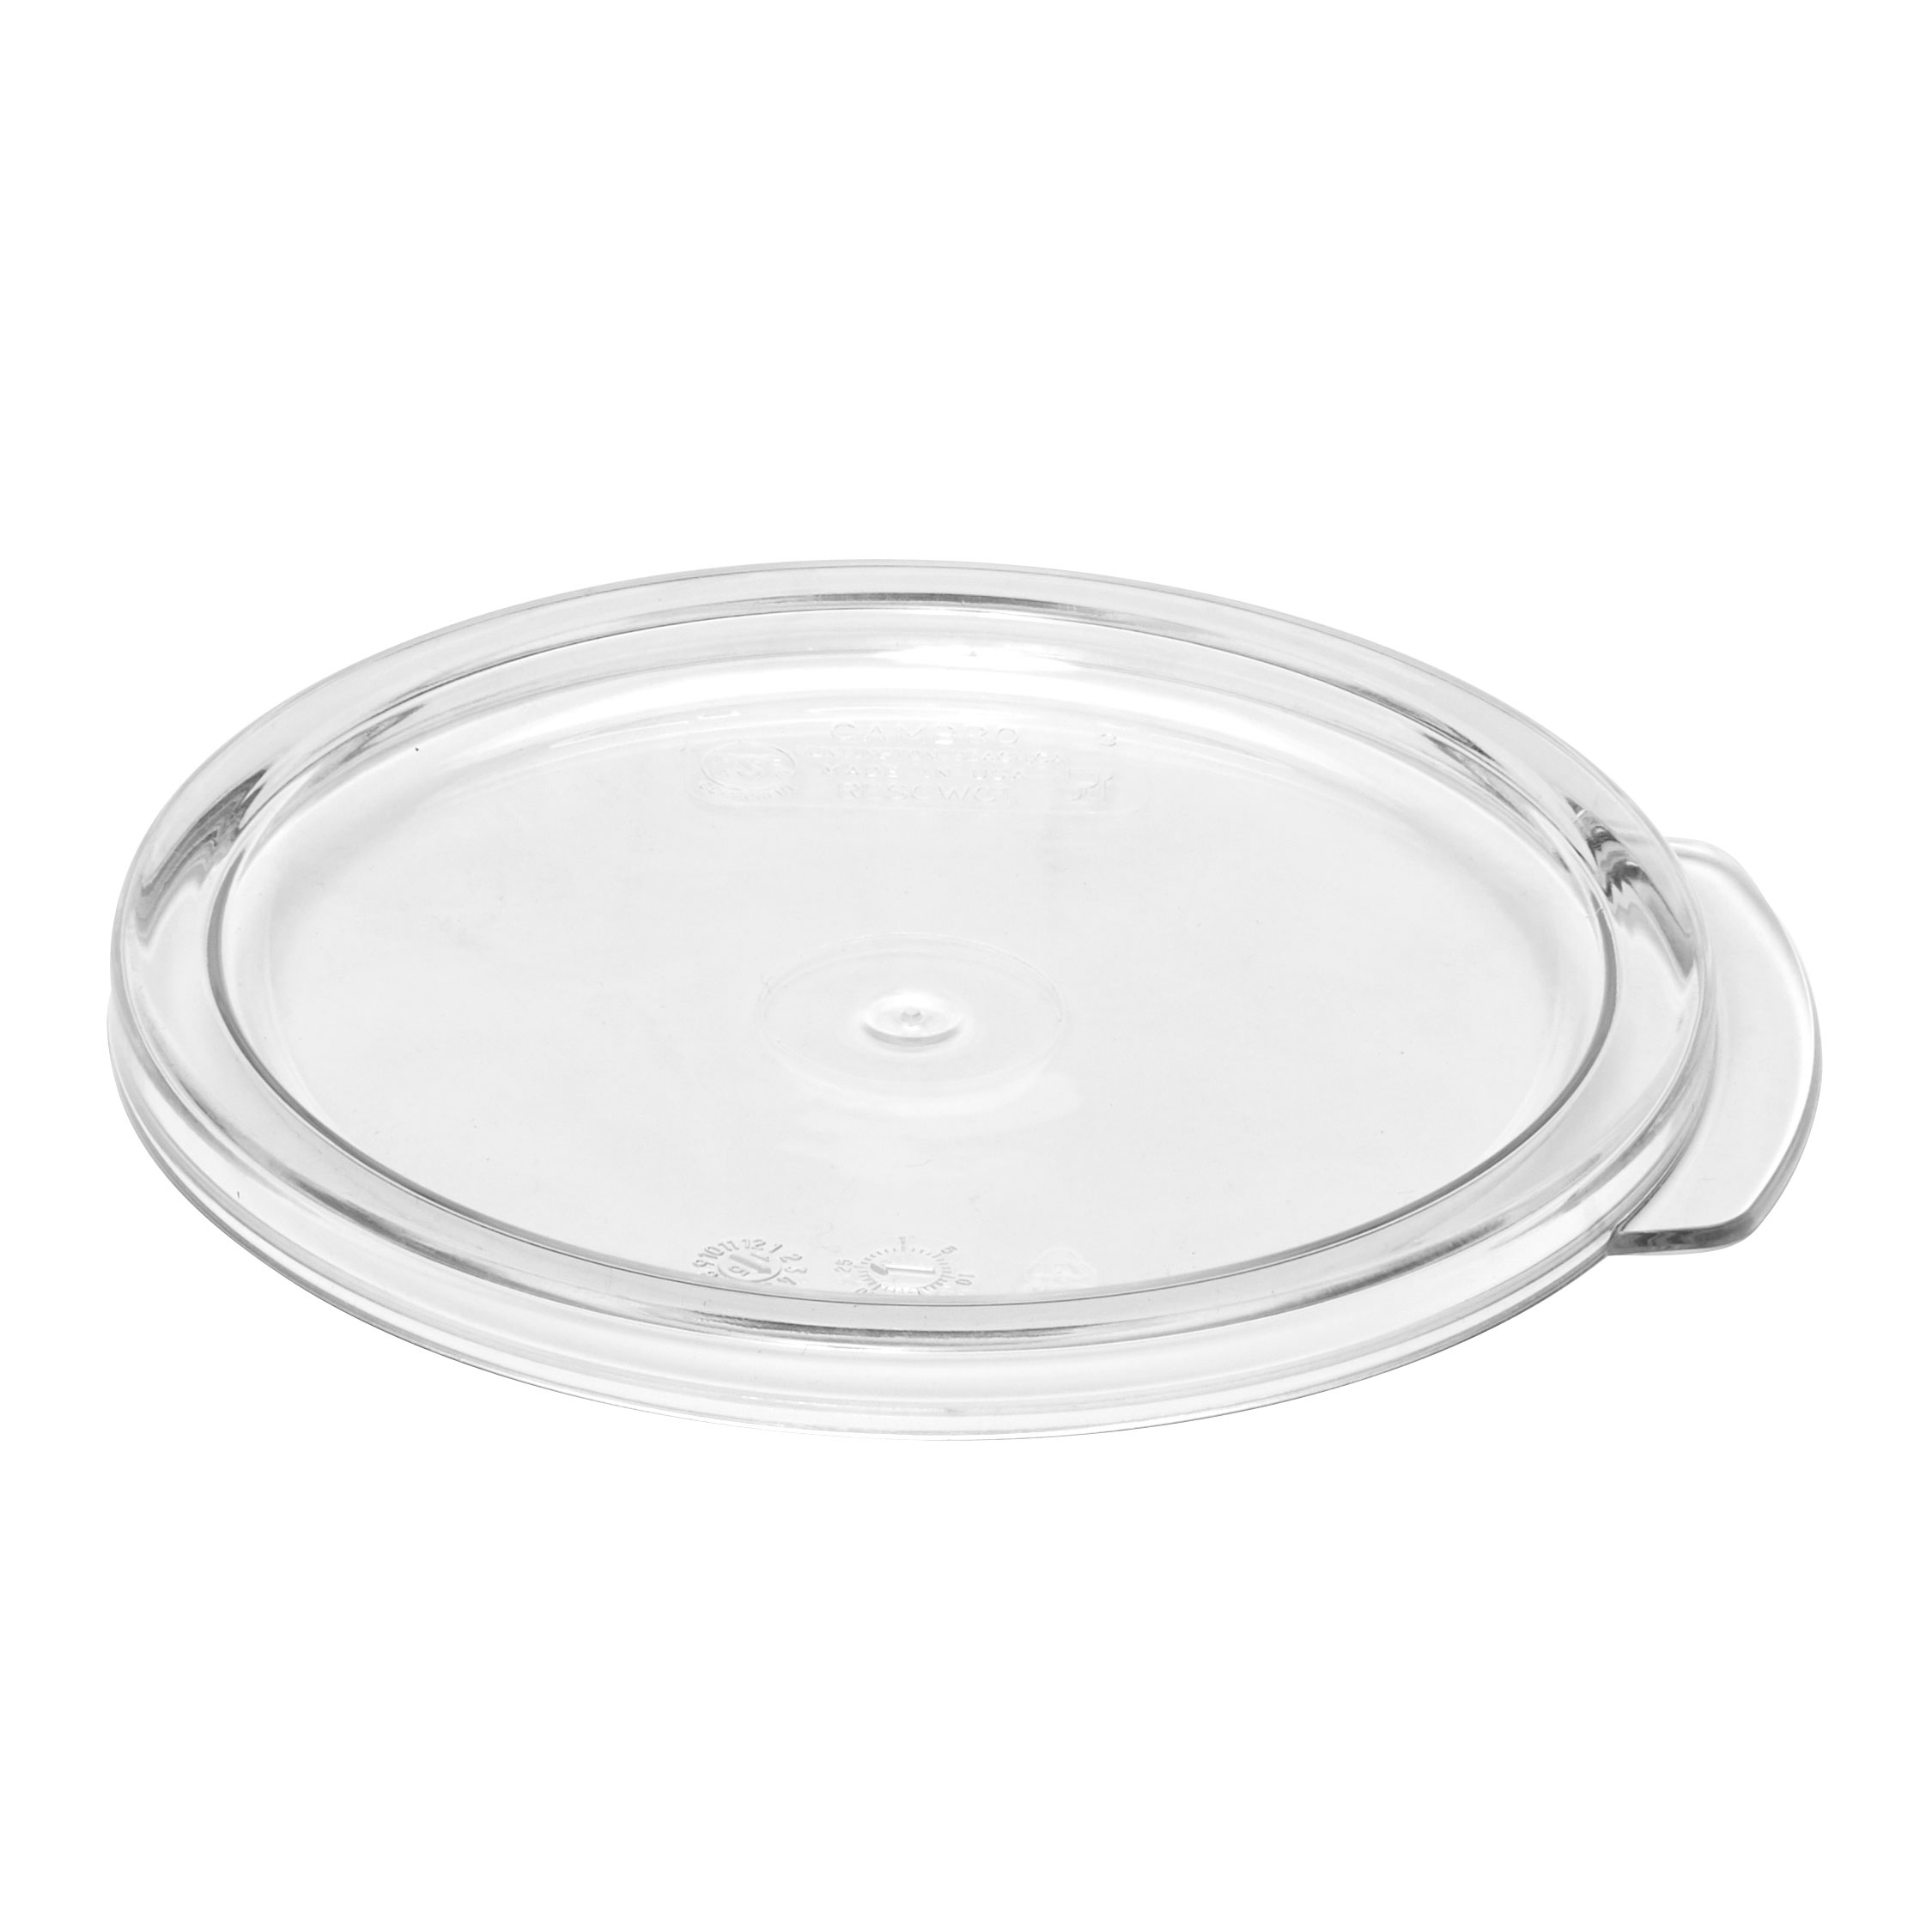 Cambro RFSCWC1135 food storage containers